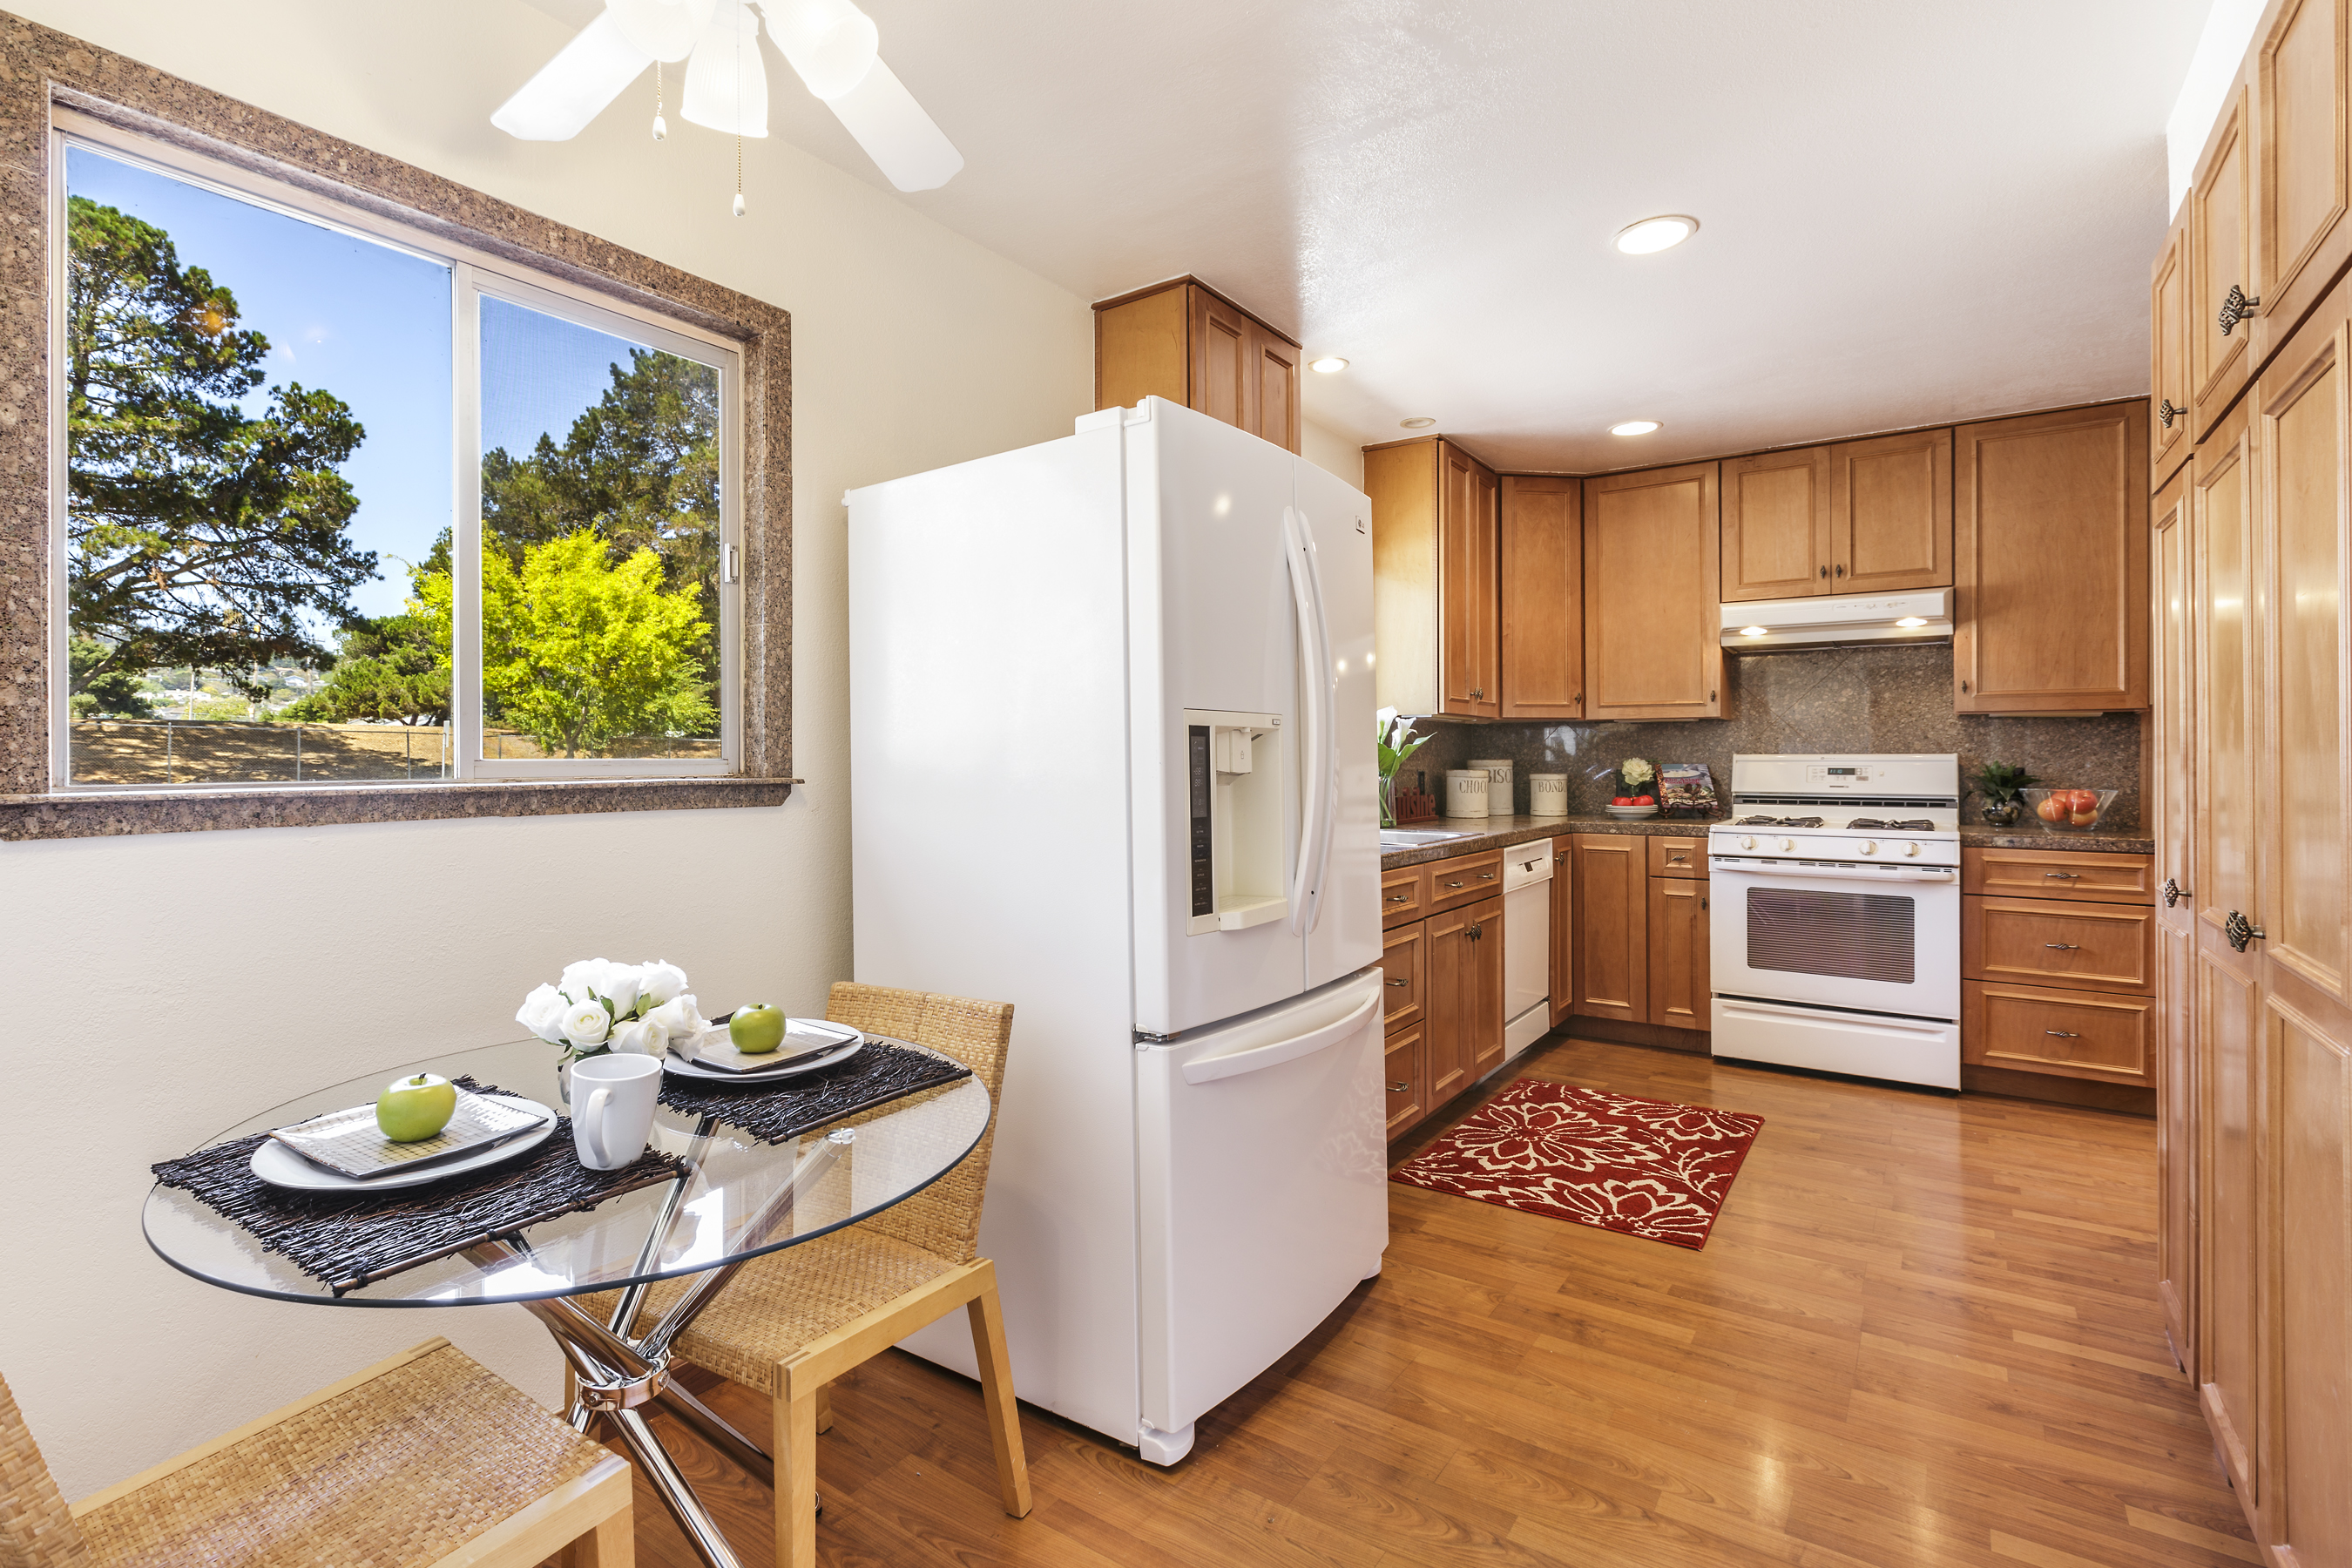 13-3115AlamedaDeLasPulgas-kitchen-high-res